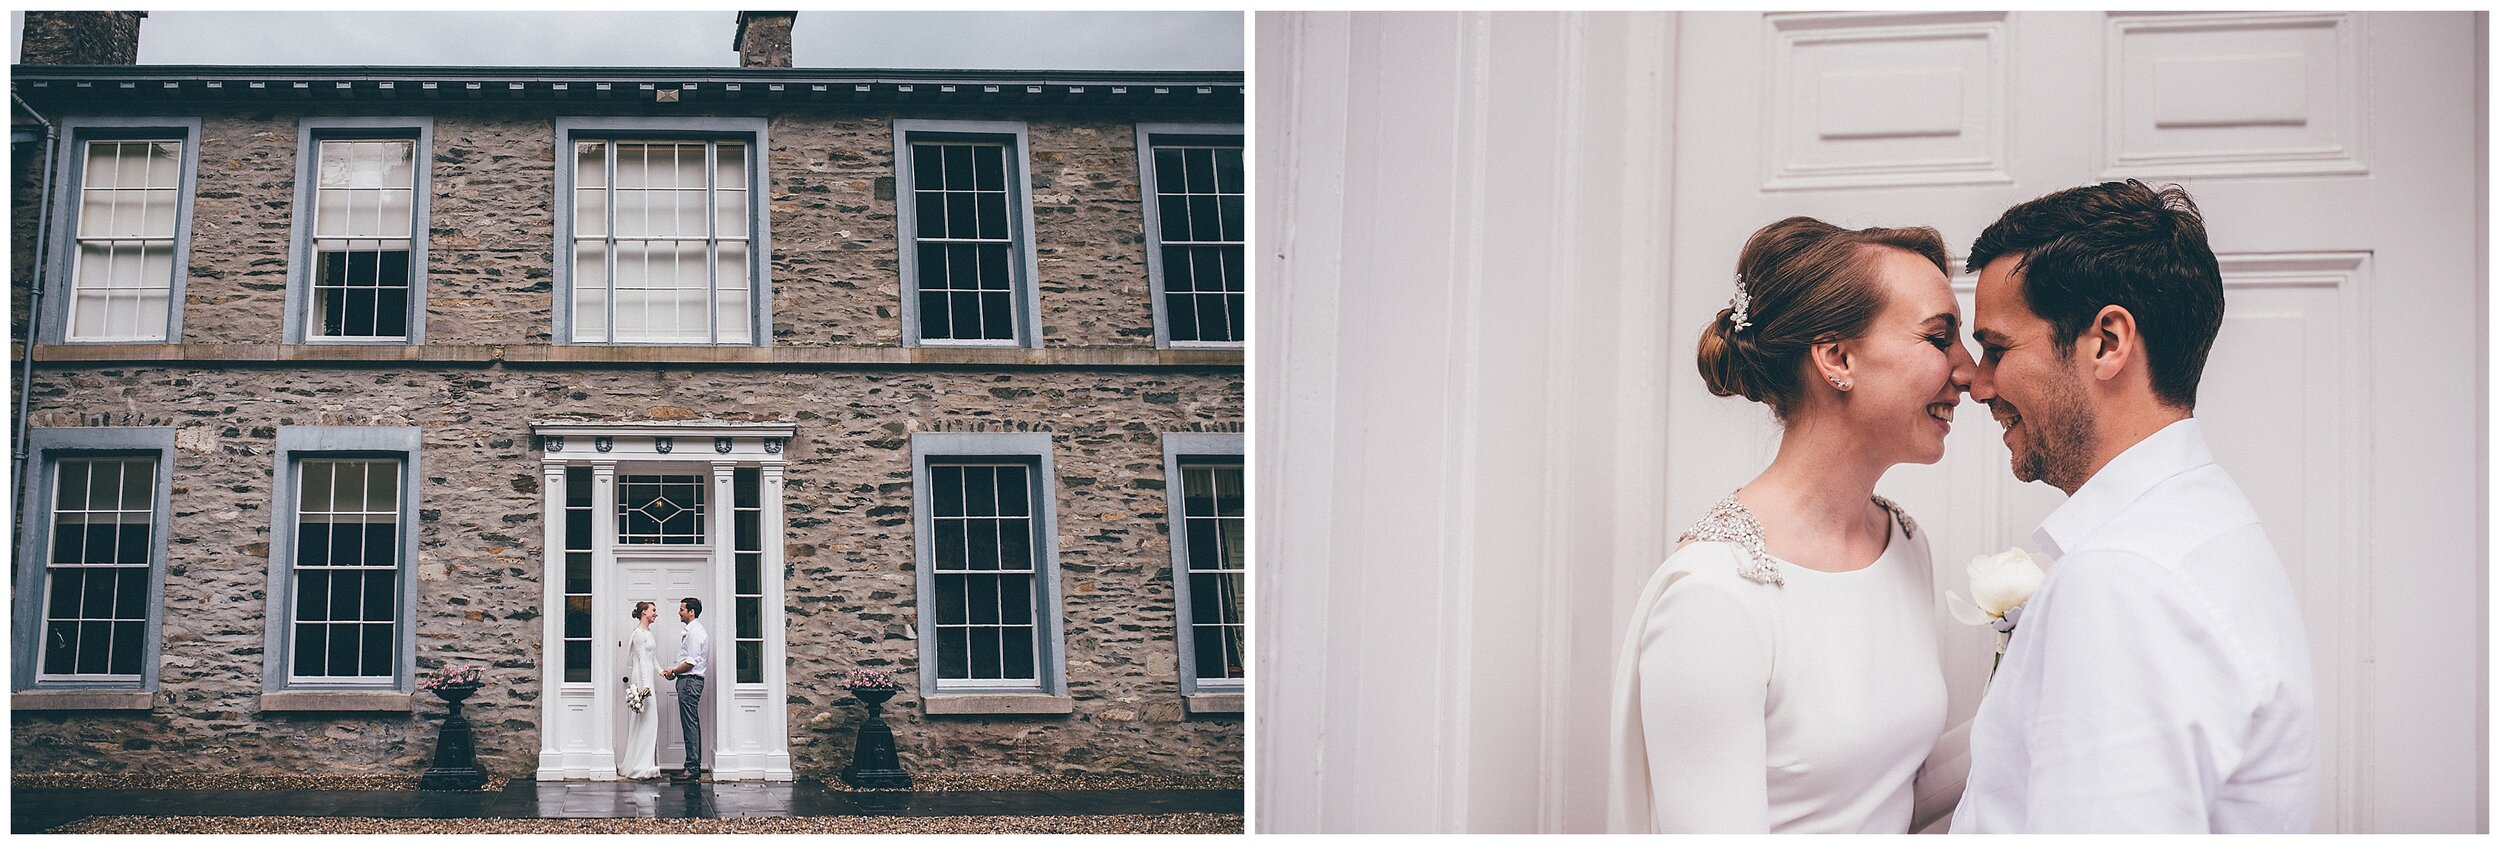 Helen Jane Smiddy wedding photography at Lake District wedding venue.